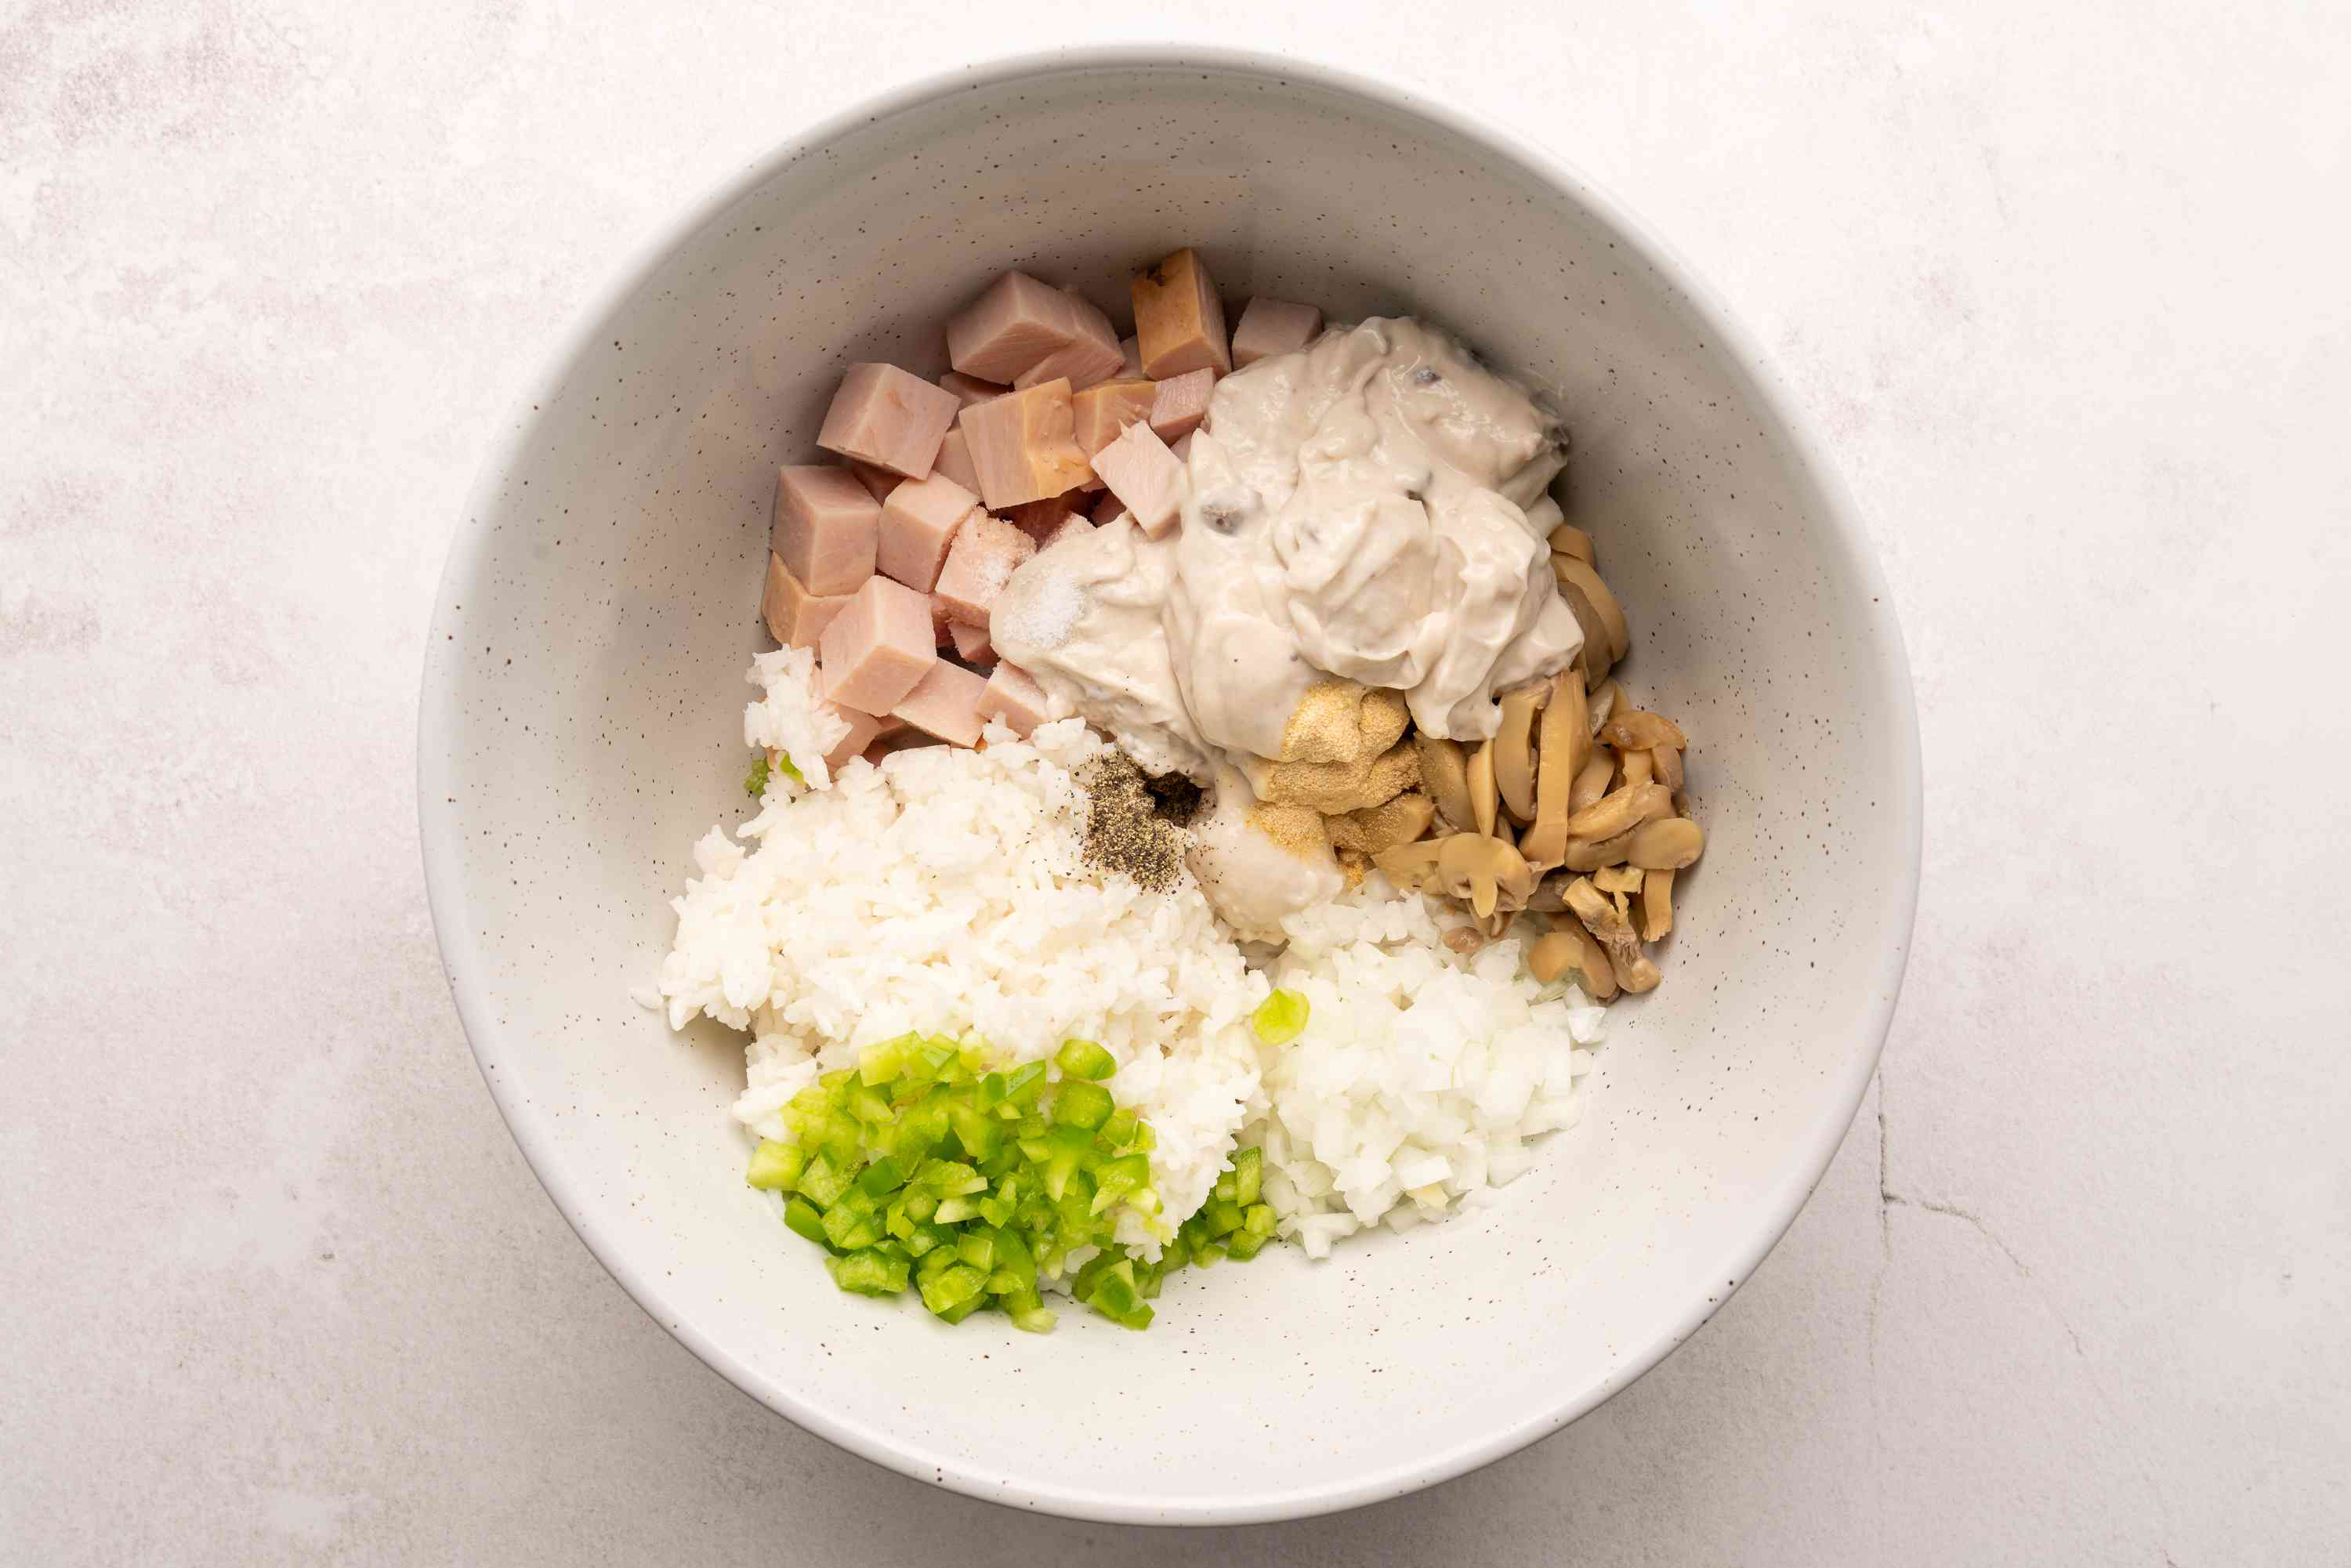 Combine all ingredients for turkey casserole in a large bowl